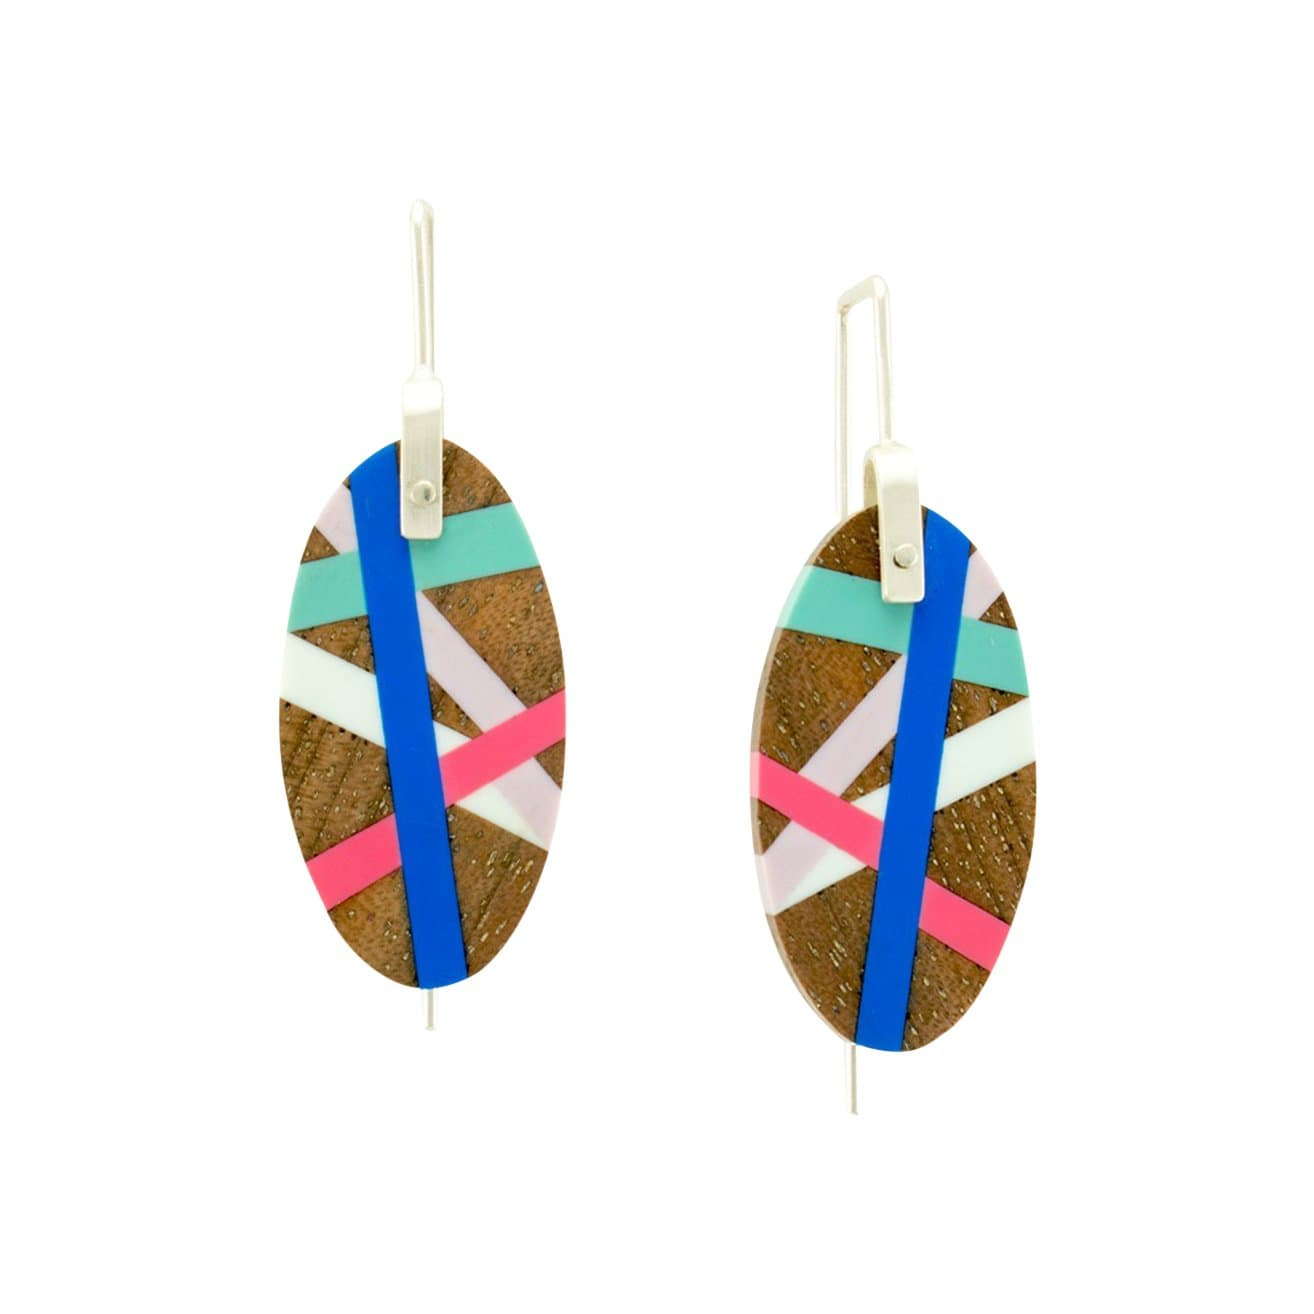 Laura Jaklitsch Jewelry Earrings Pink/Blue with Inlay Hanging Earrings